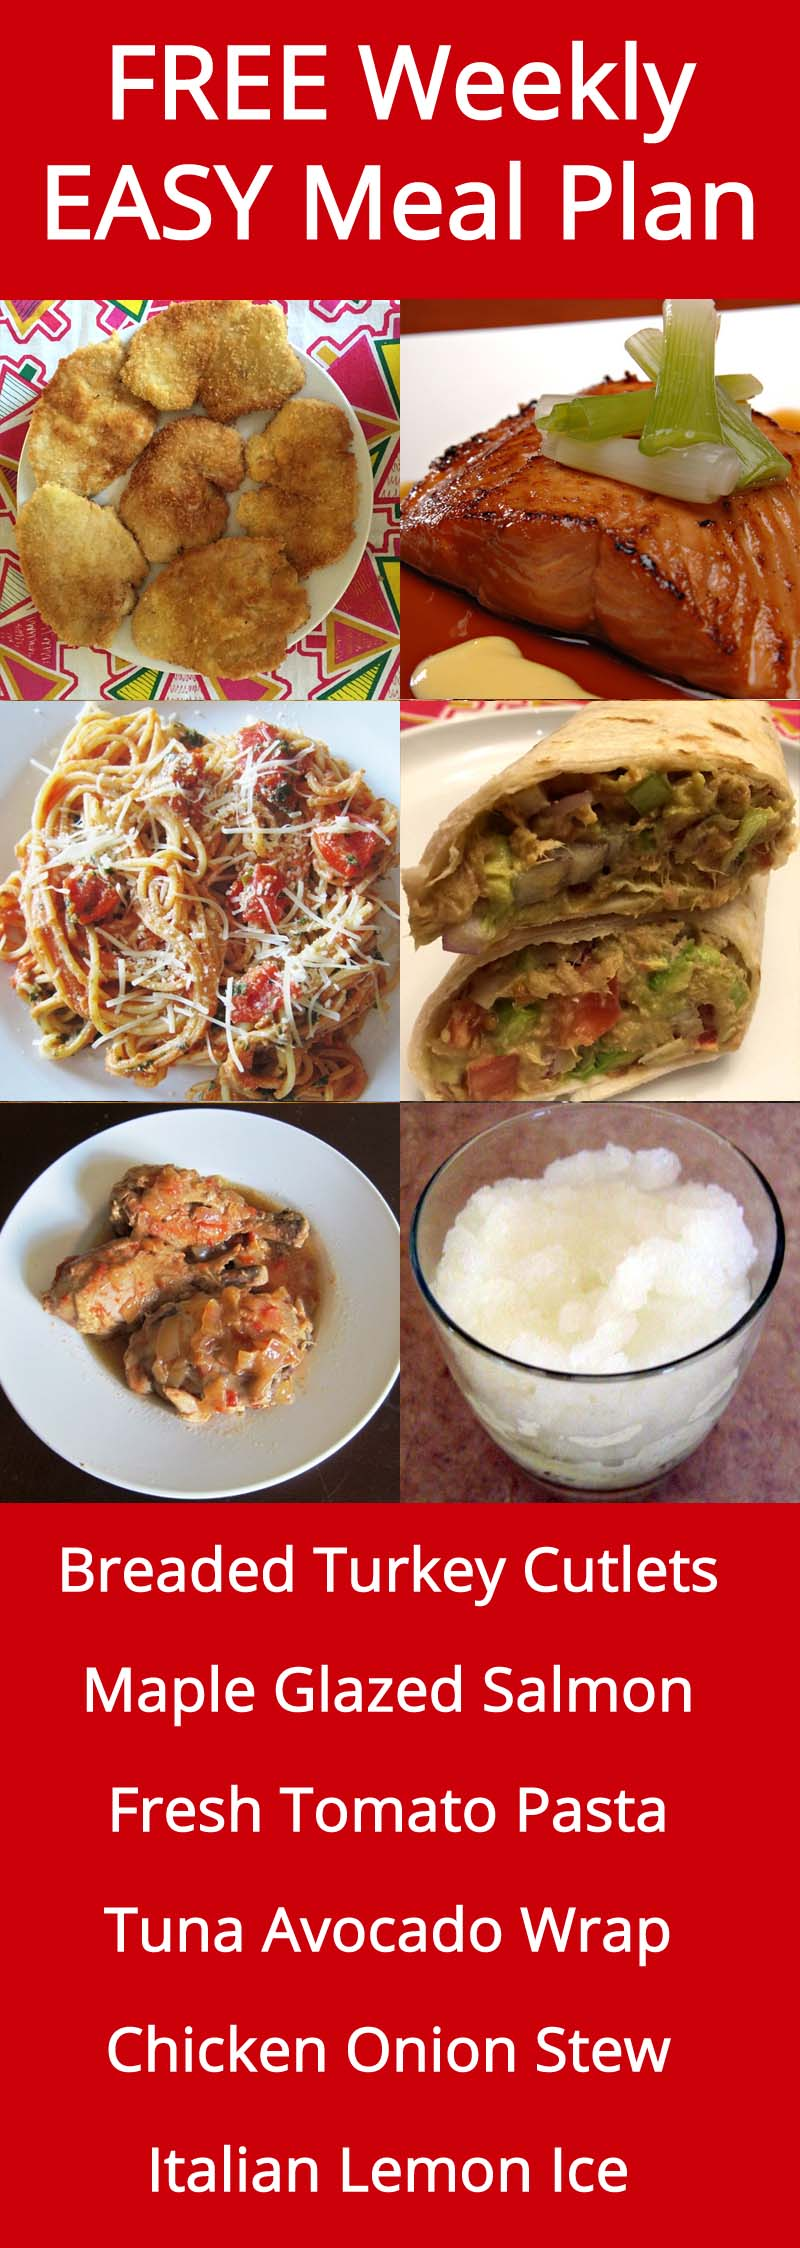 FREE Weekly Easy Family Meal Plan